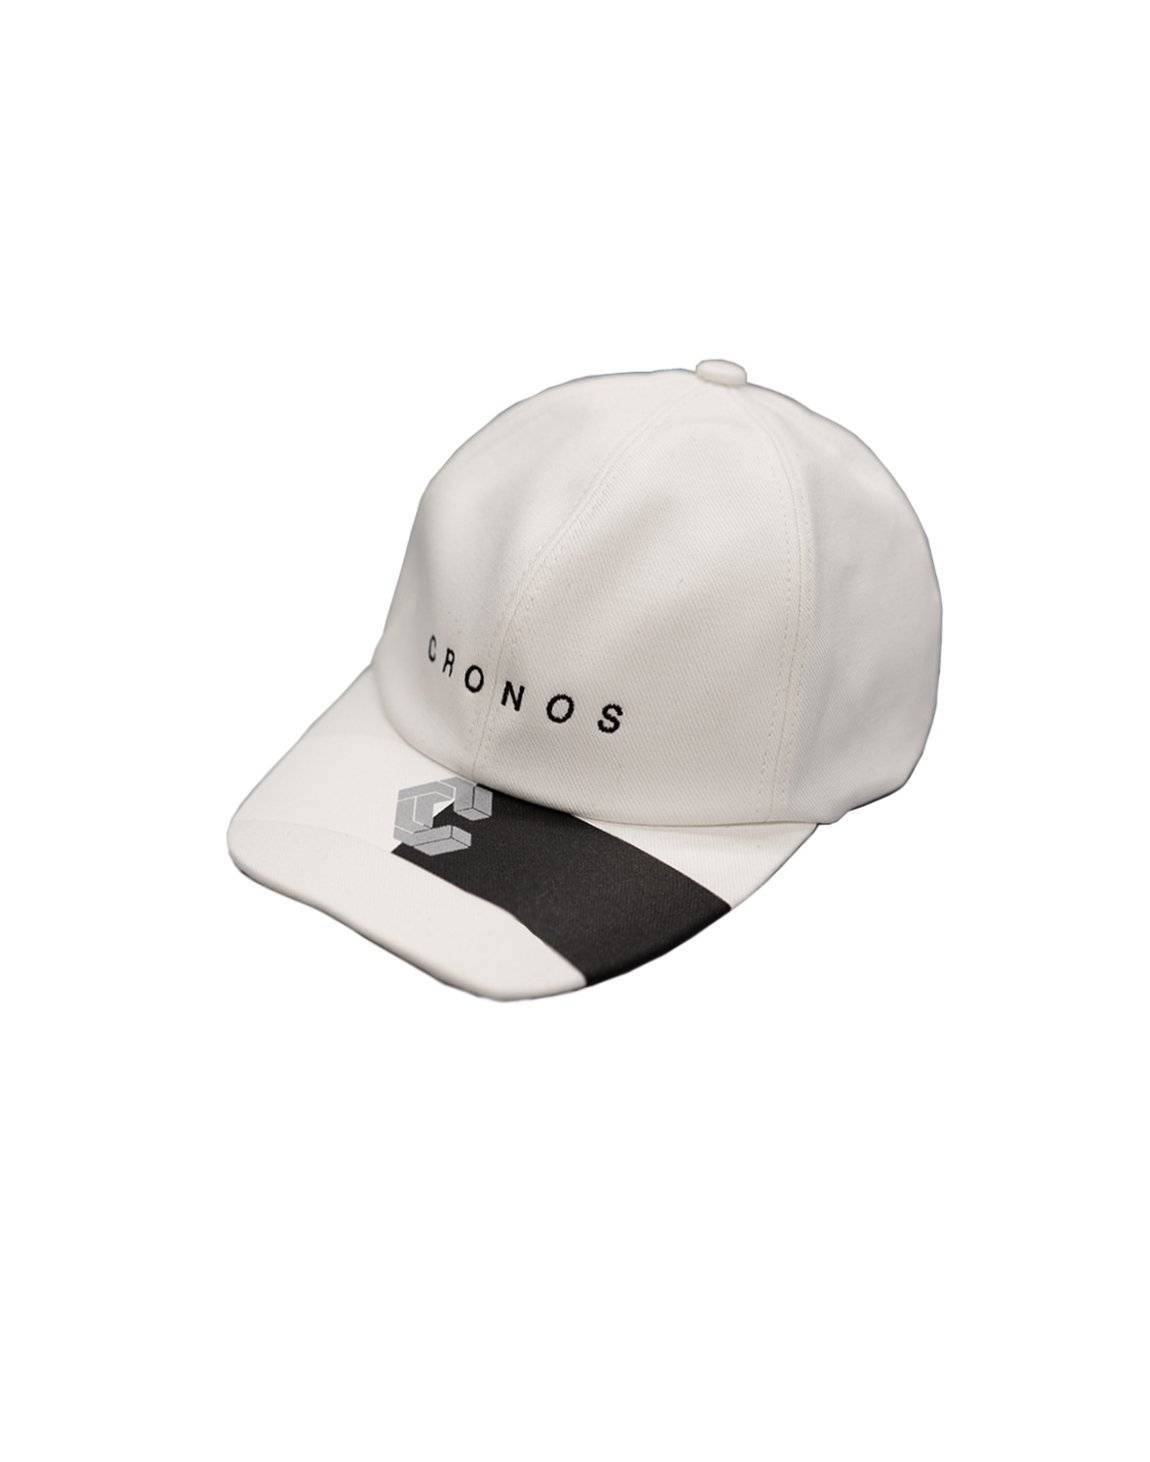 CRONOS HALF COLOR CAP 【WHITE】